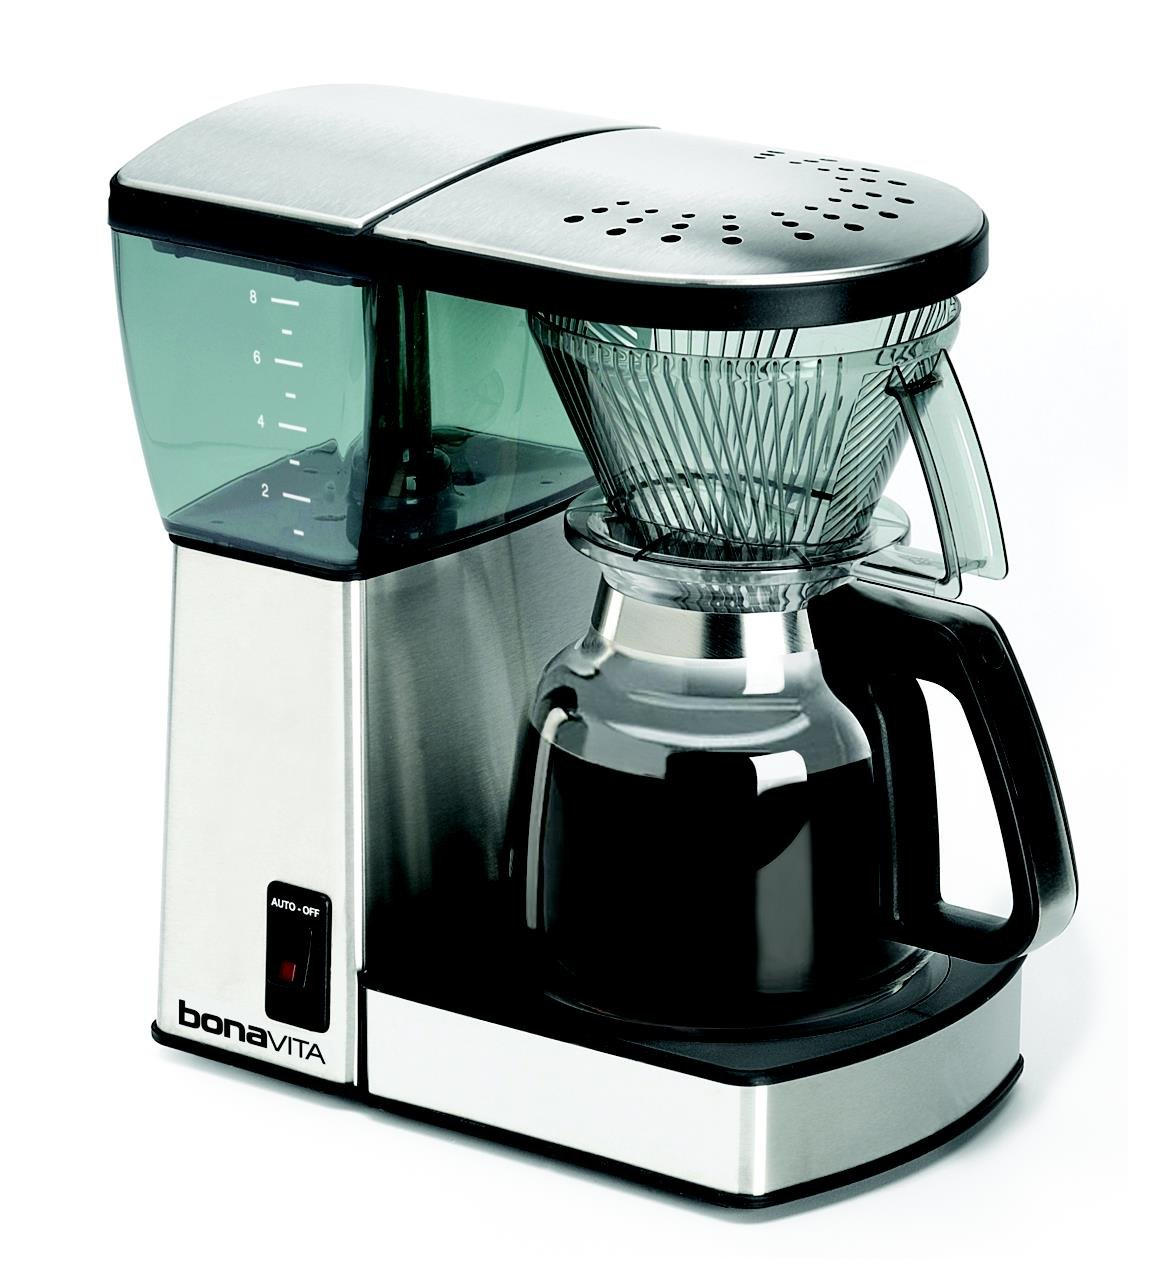 USD 15 click coupon on Bonavita BV1800 8-Cup Coffee Maker Lower the cost of click coupons